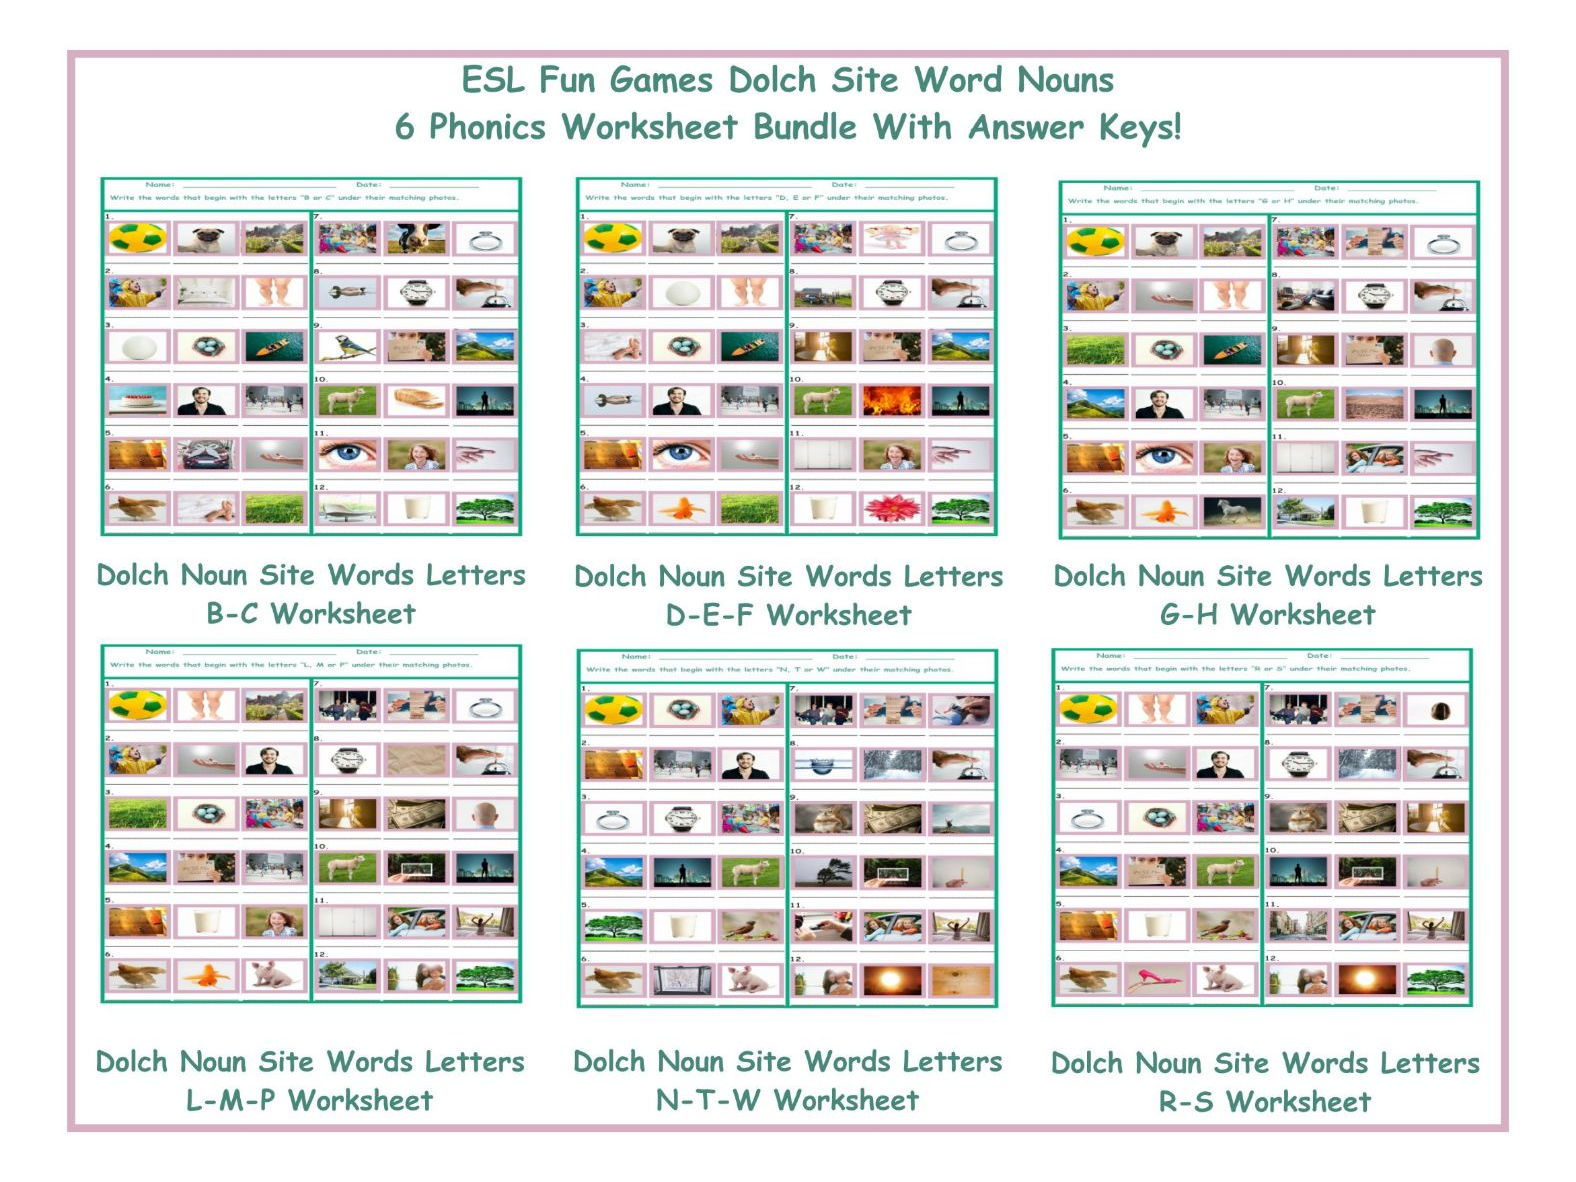 Plotting Coordinates Worksheet Excel Dolch Noun Site Words Letters Rs Worksheet By Eslfungames  All About Me Free Worksheet Excel with Special Right Triangles 30 60 90 Worksheet Dolch Noun Site Words Letters Rs Worksheet By Eslfungames  Teaching  Resources  Tes Dictionary Skills Worksheets Excel